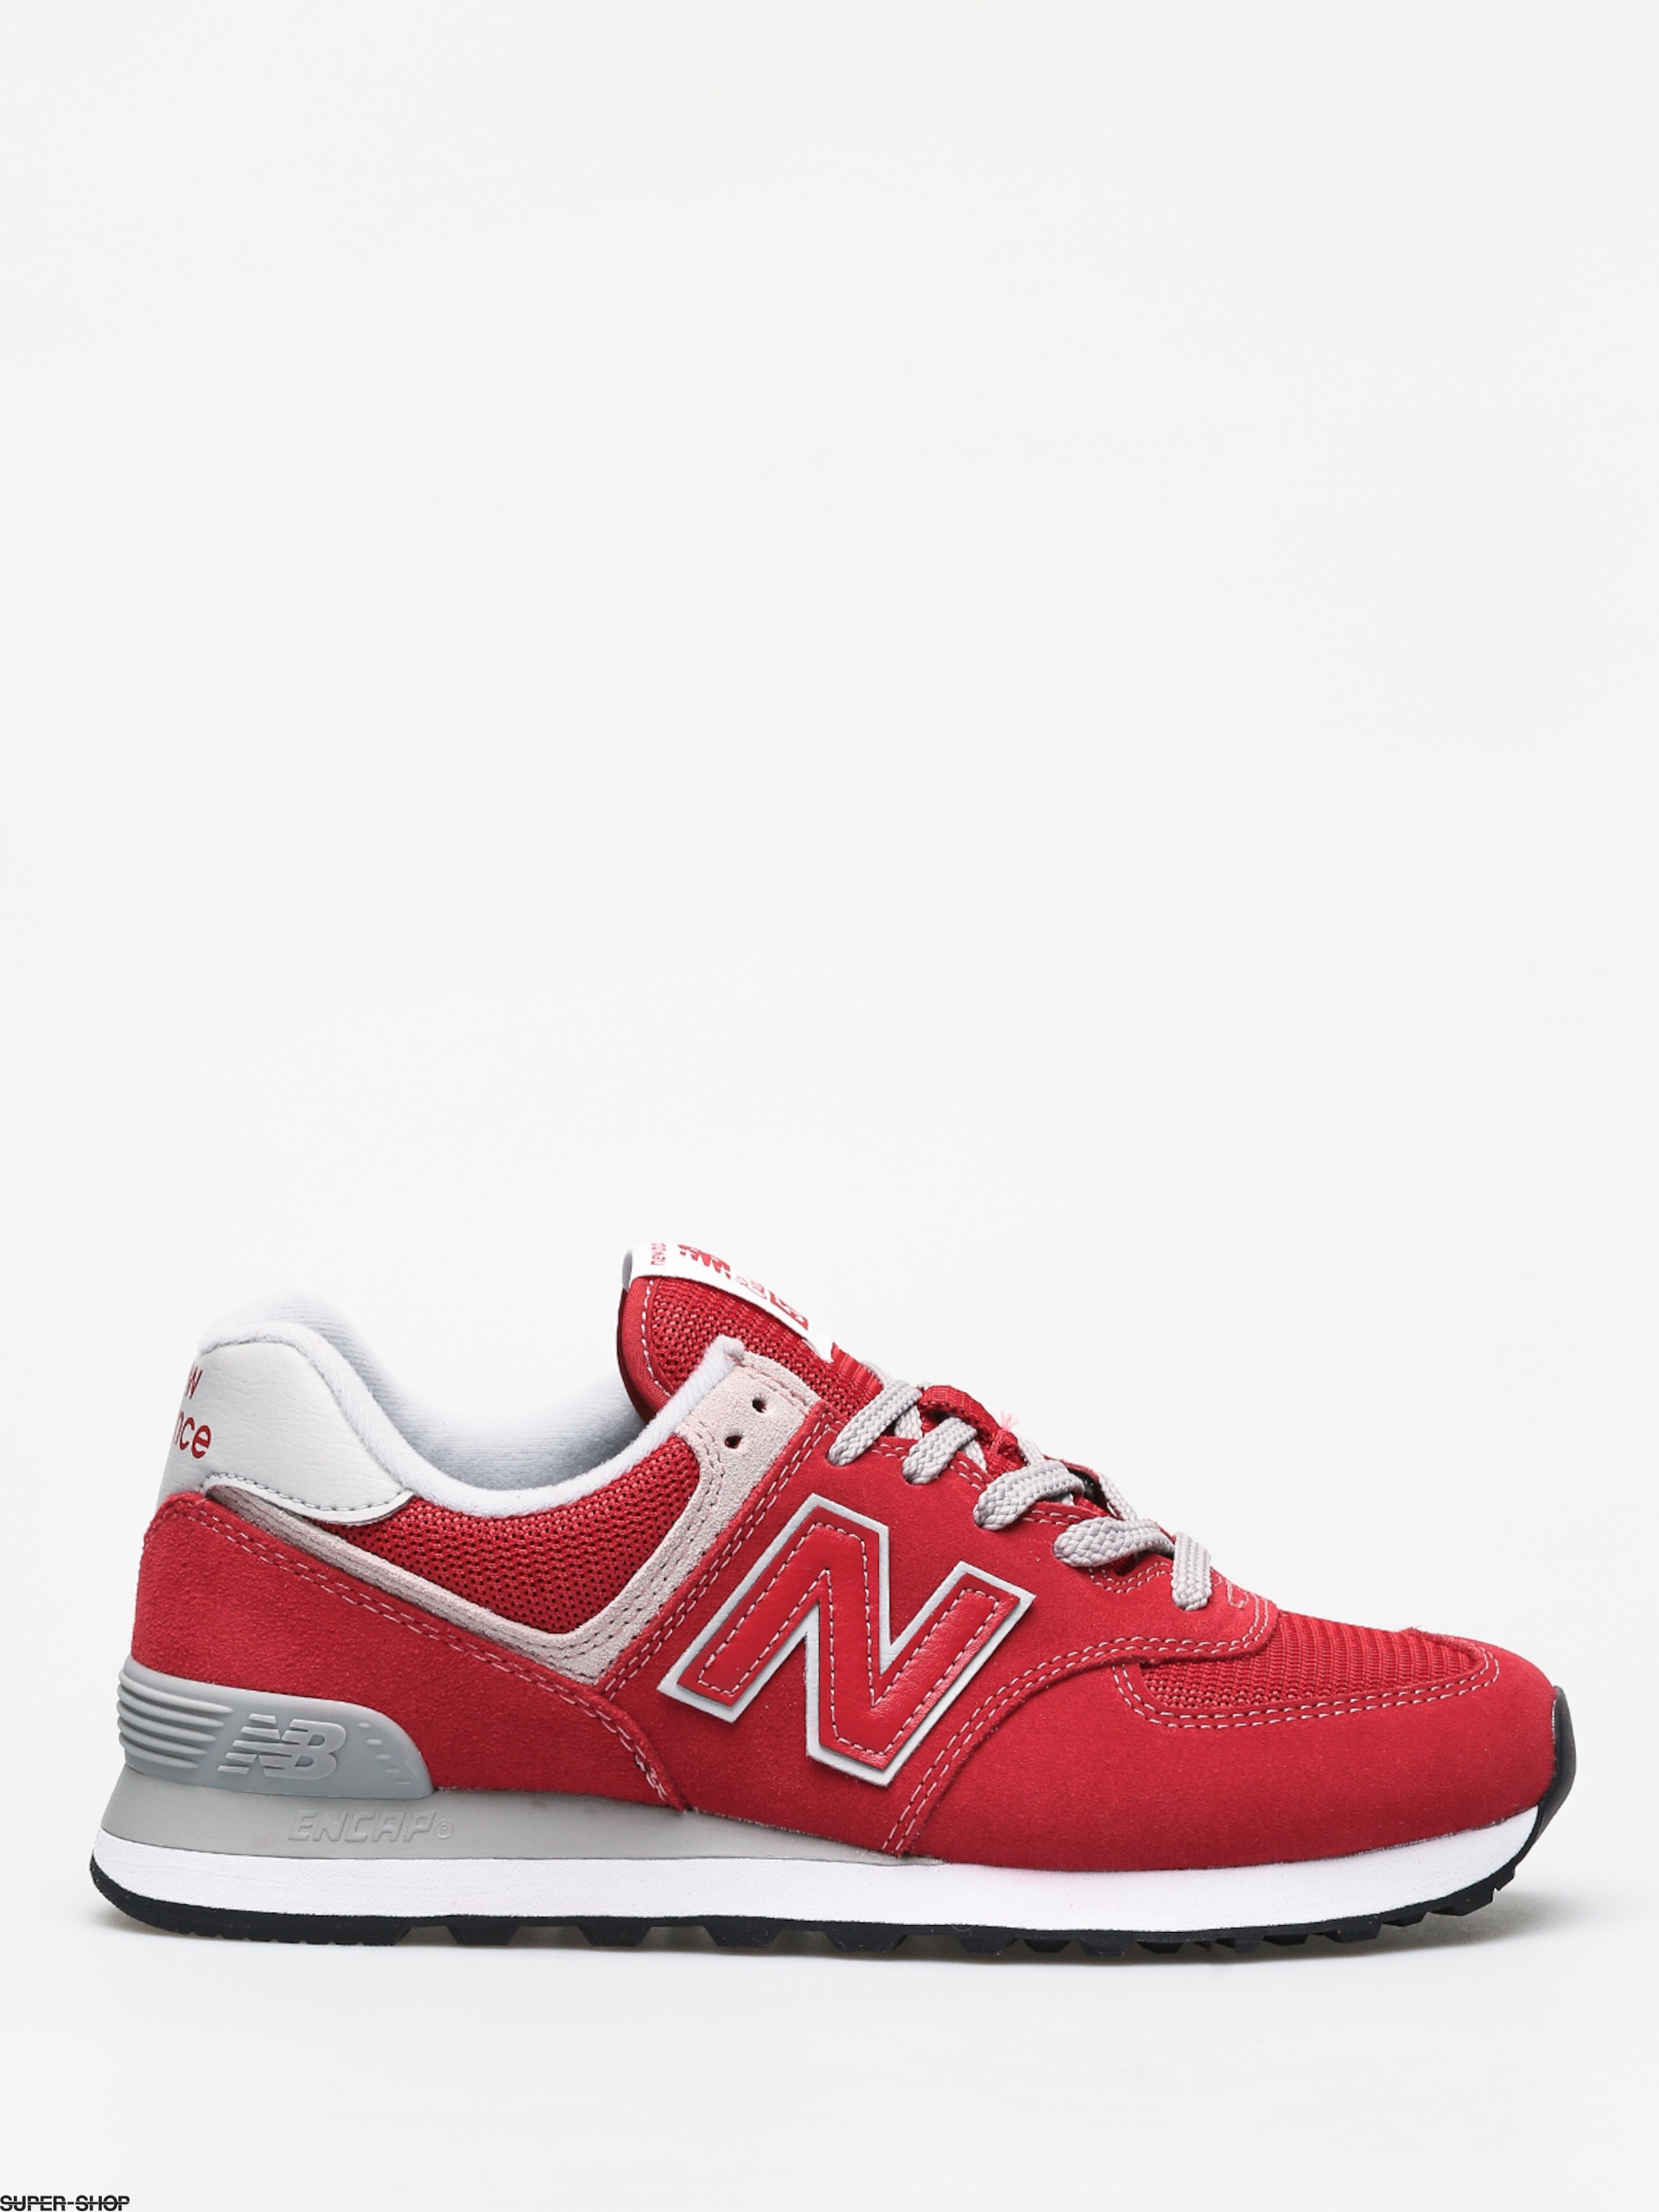 cheap for discount 2779e 7a8f3 New Balance 574 Shoes (team red)